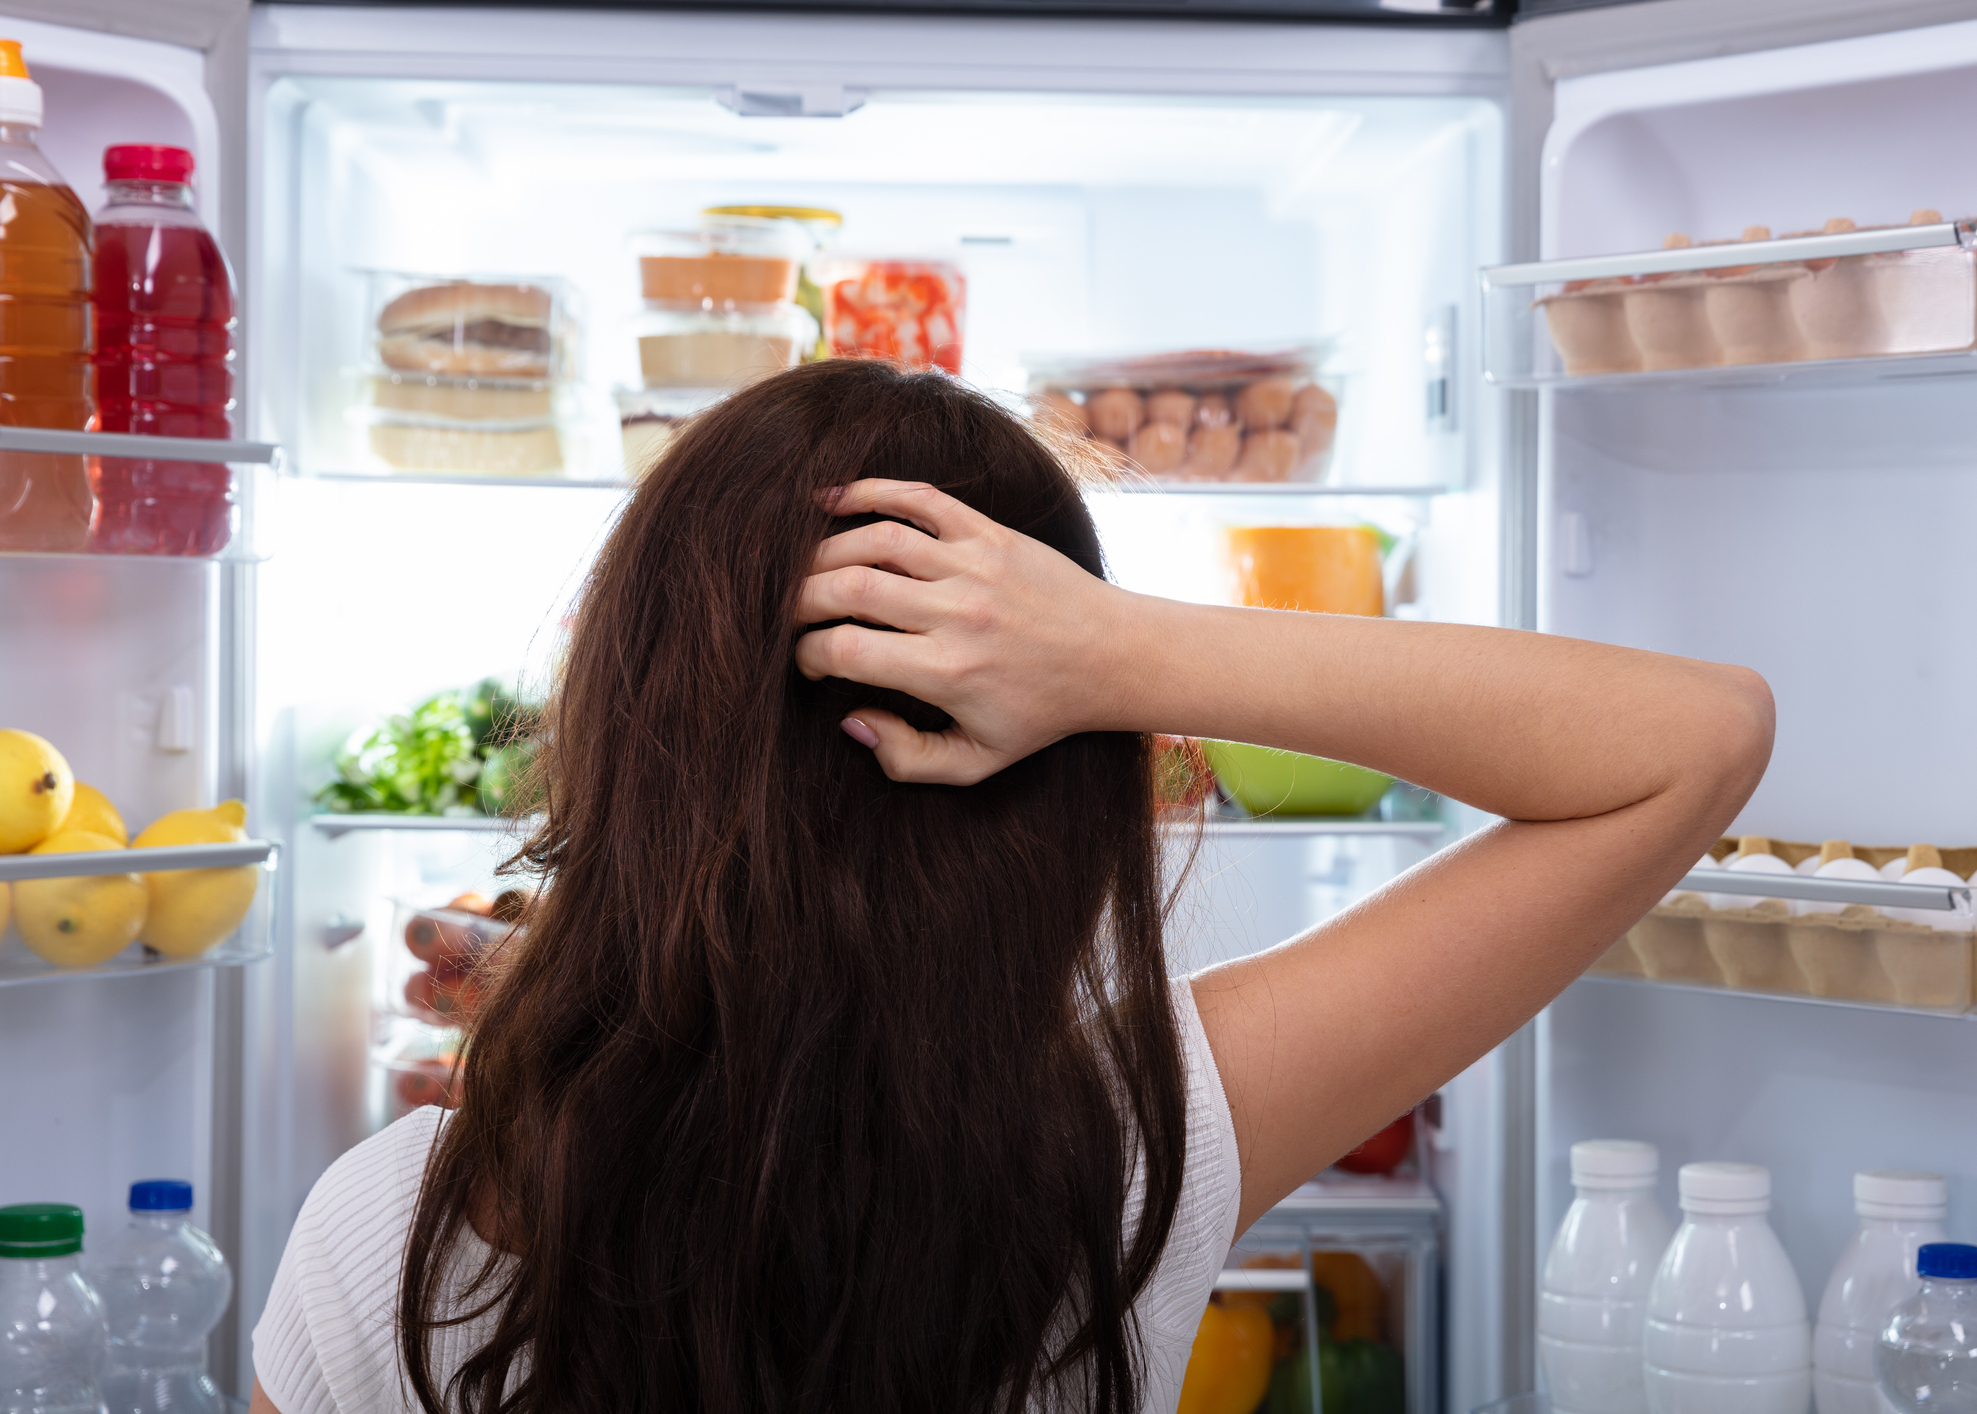 The Best Way to Organize Your Refrigerator So Food Stays Fresh Longer